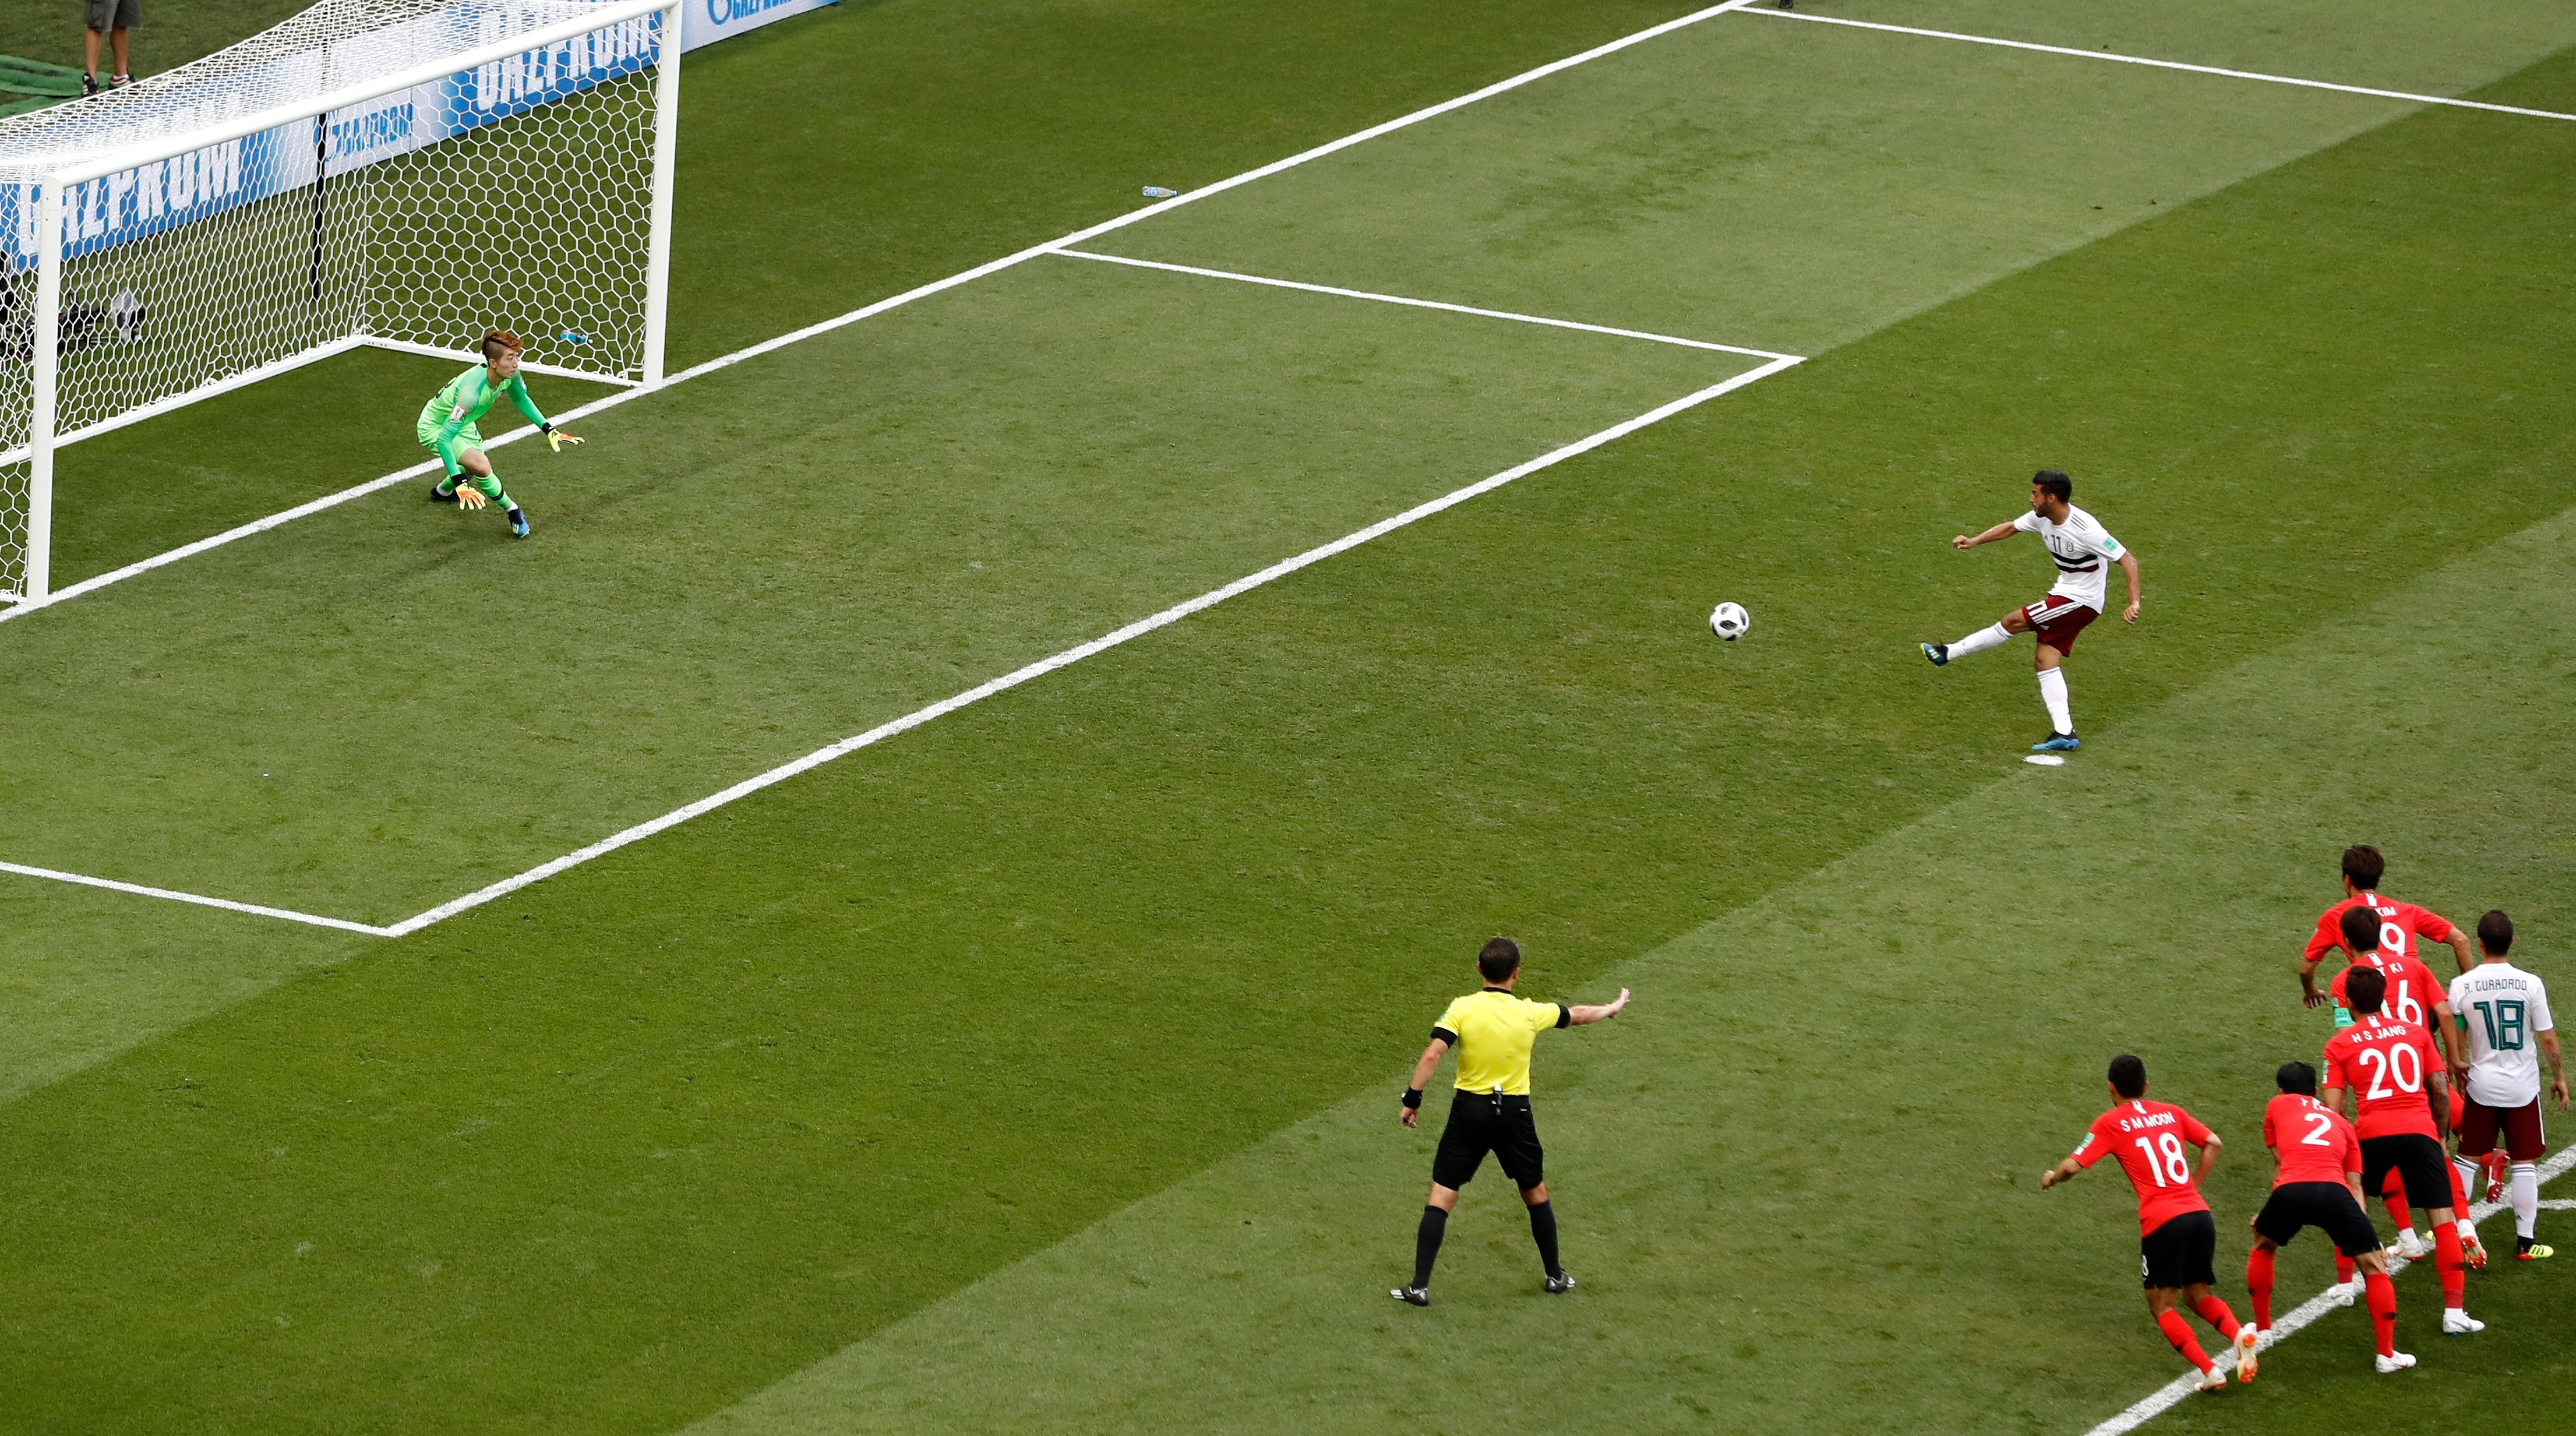 Mexico's Carlos Vela, right, kicks the ball to score his team's first goal from a penalty during the group F match between Mexico and South Korea at the 2018 soccer World Cup in the Rostov Arena in Rostov-on-Don, Russia, Saturday, June 23, 2018.